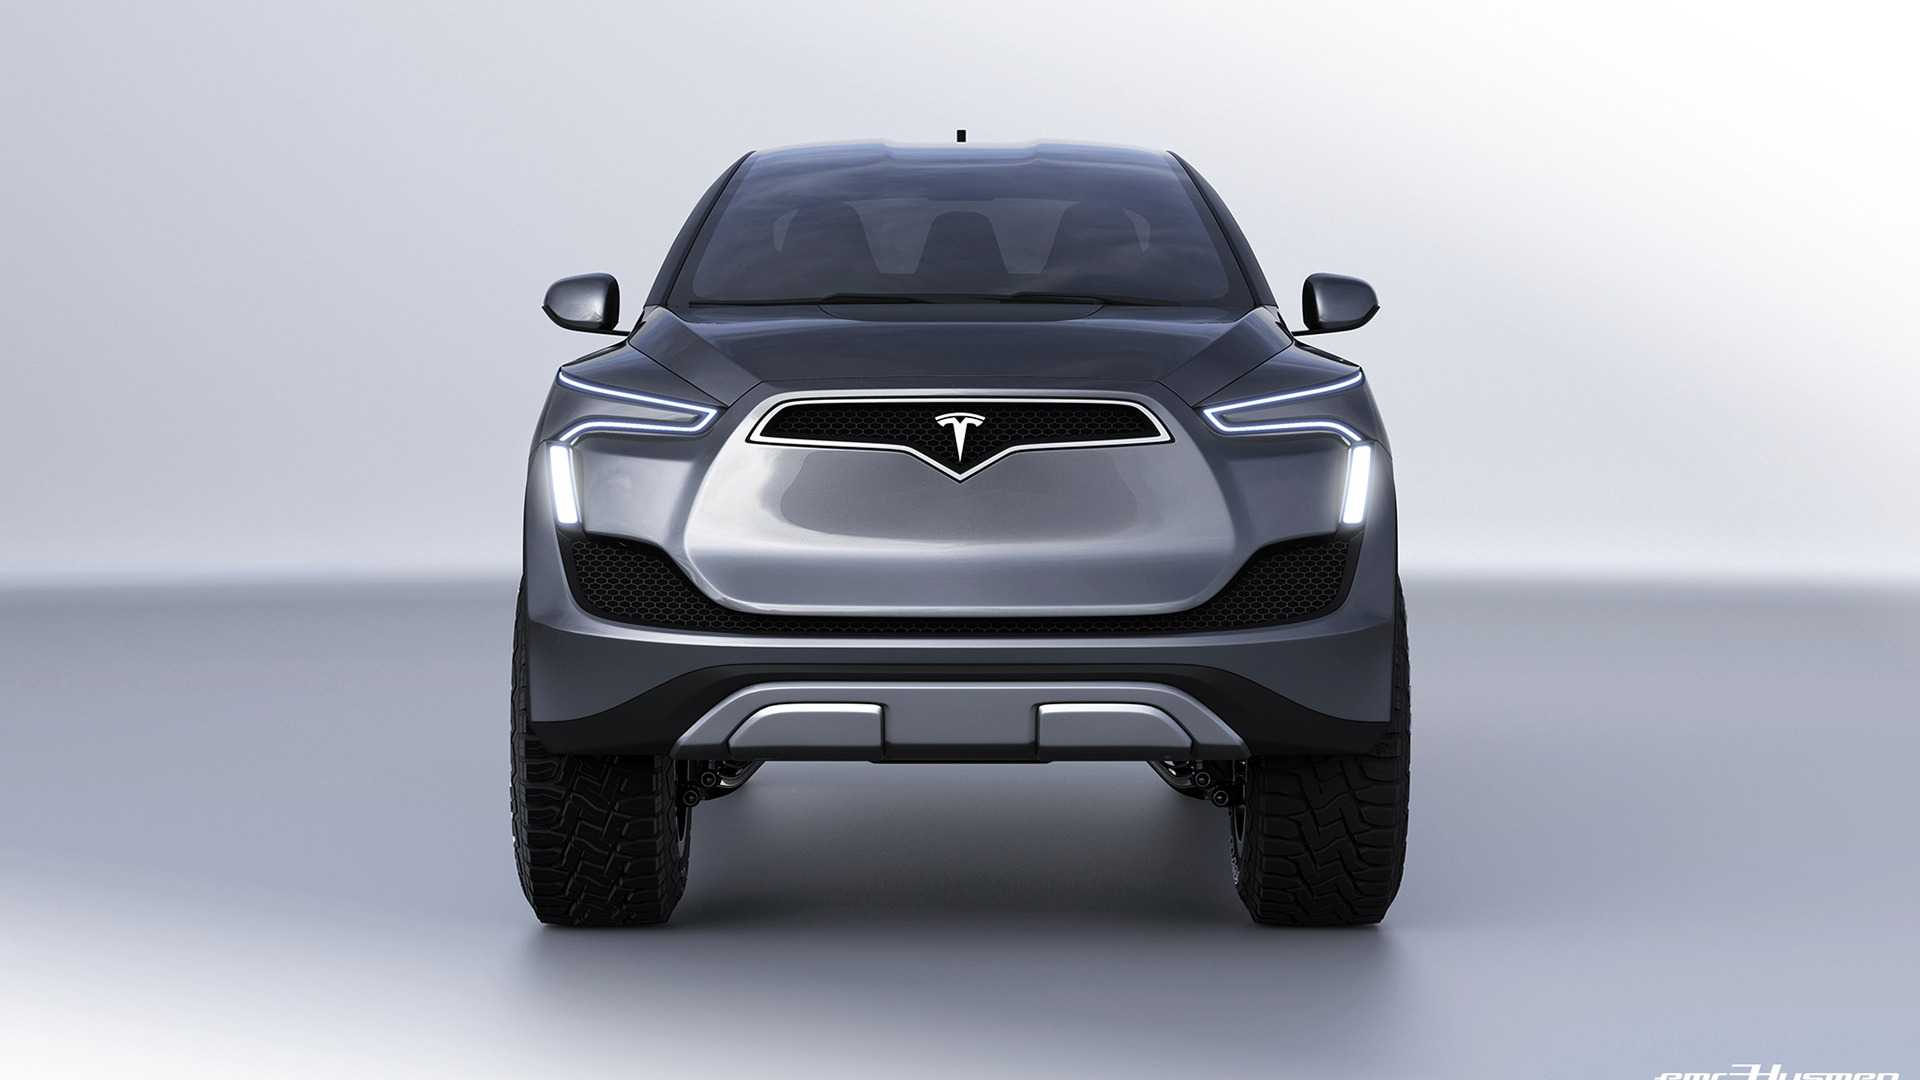 Tesla Pickup Truck Reliability Might Be A Major Concern